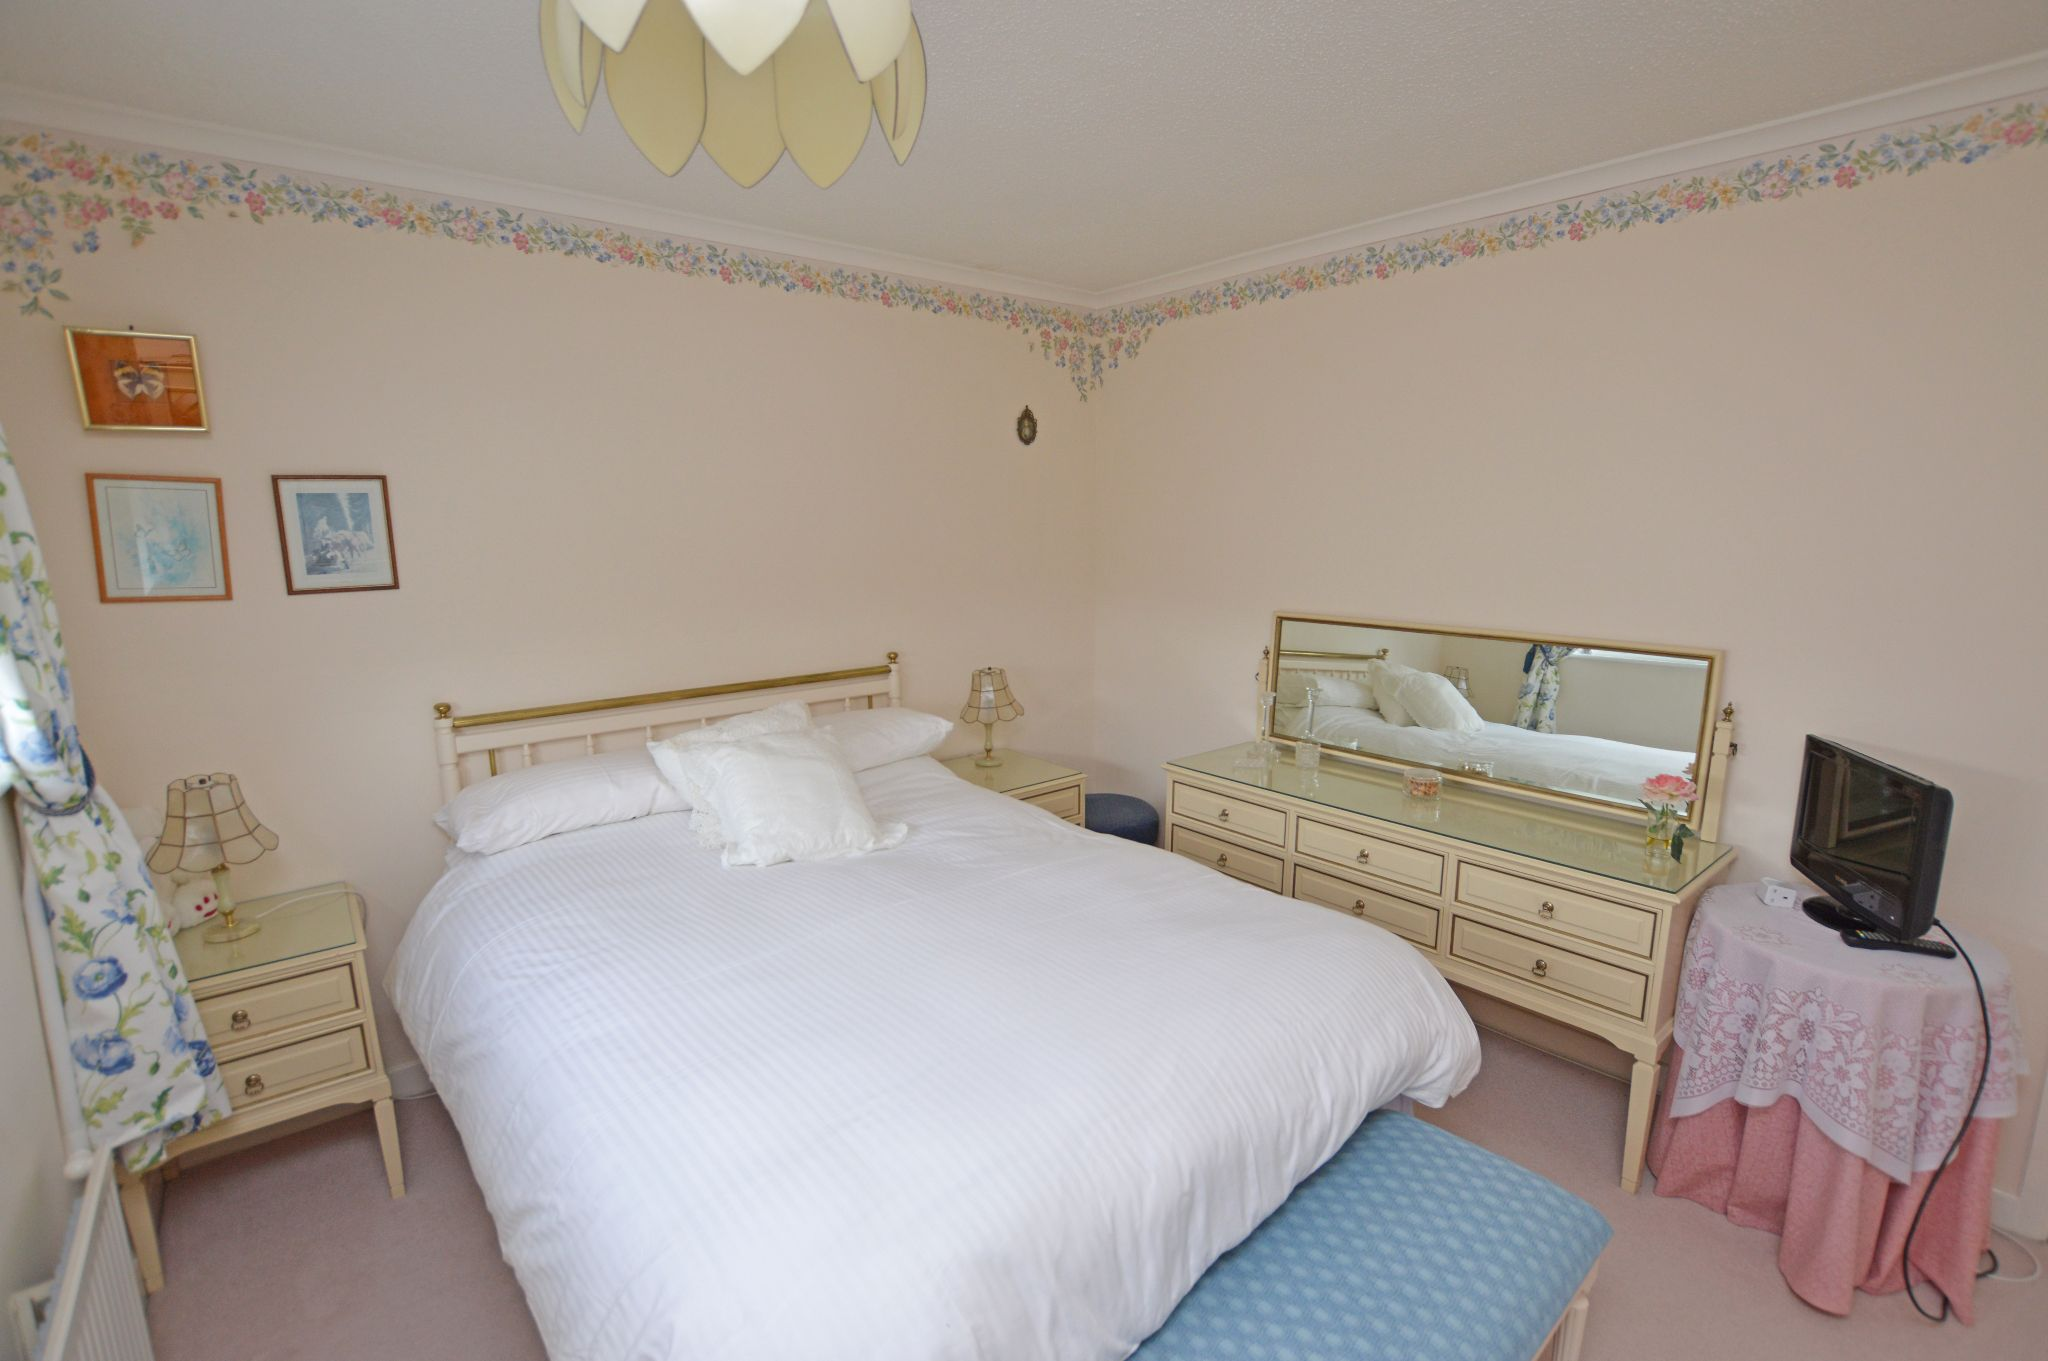 4 bedroom detached house For Sale in Abergele - Bedroom 3 View 2